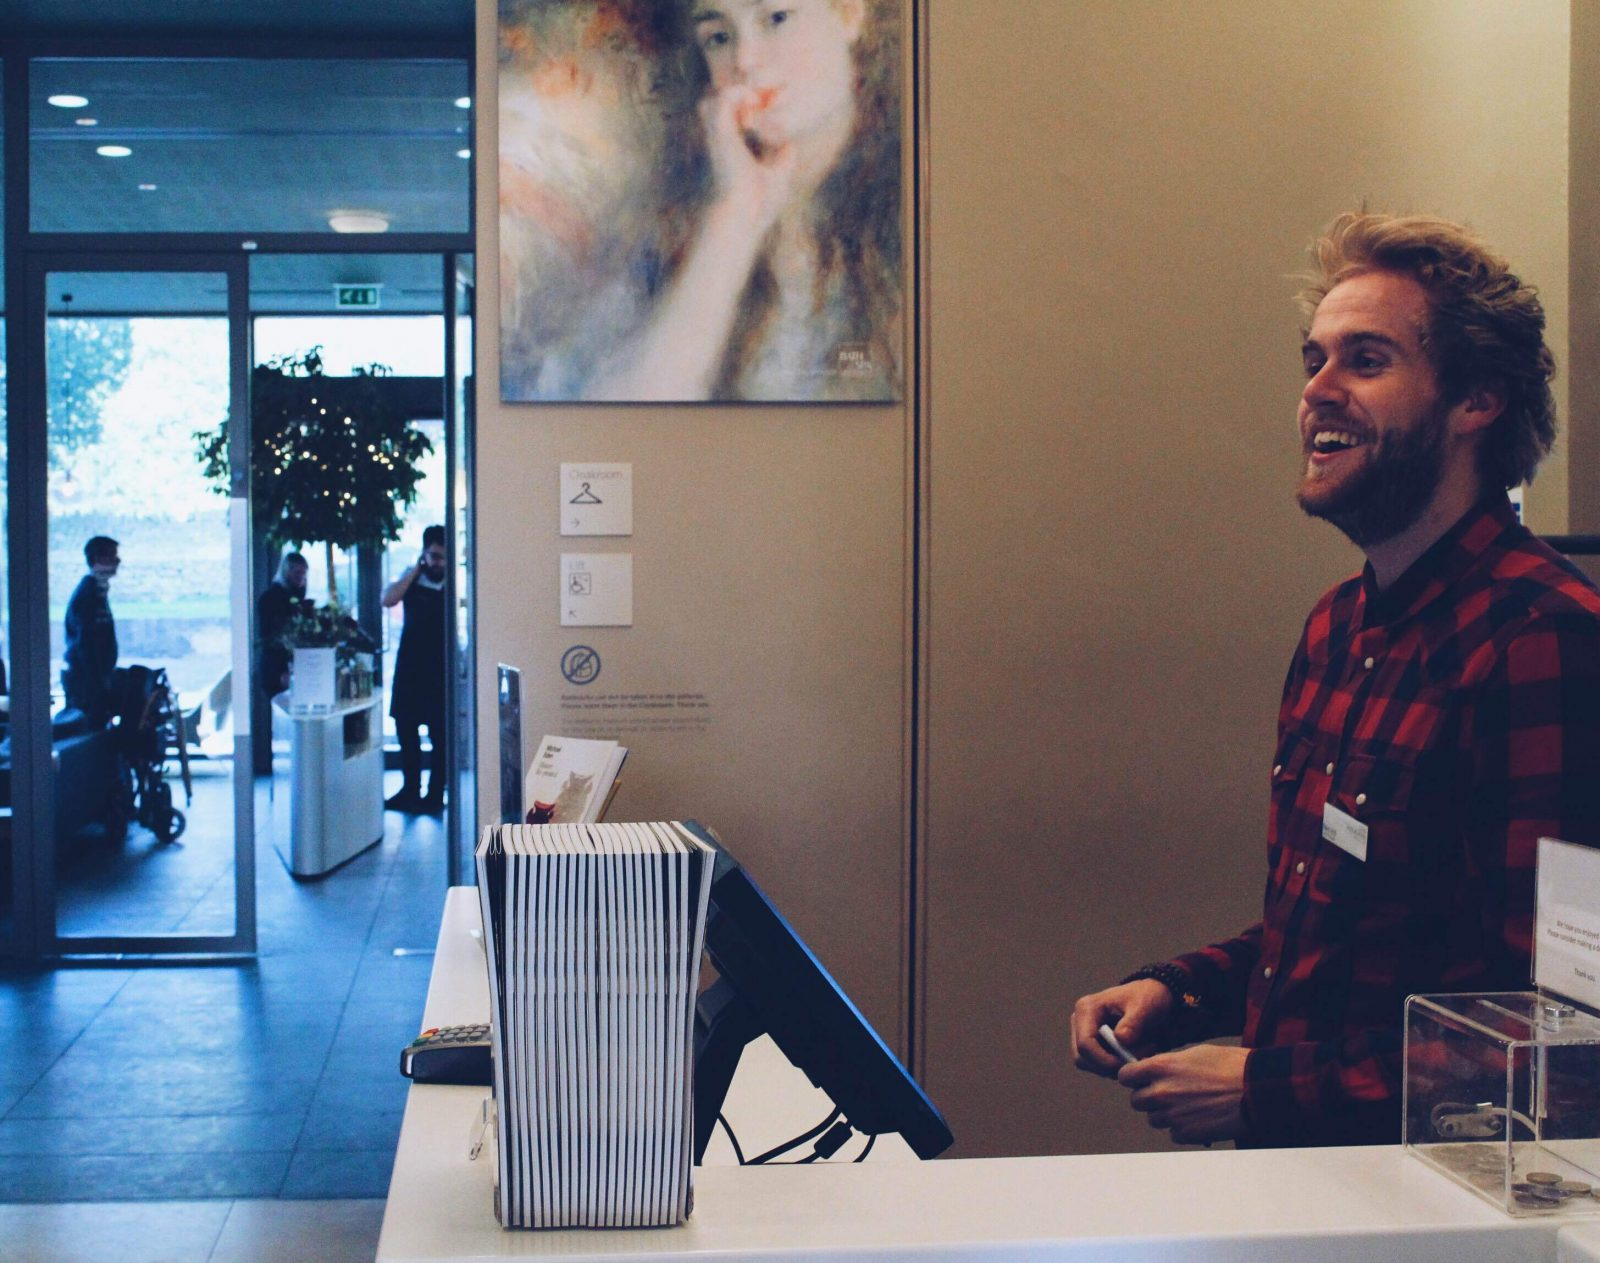 A volunteer smiling at the reception desk in The Holburne Museum